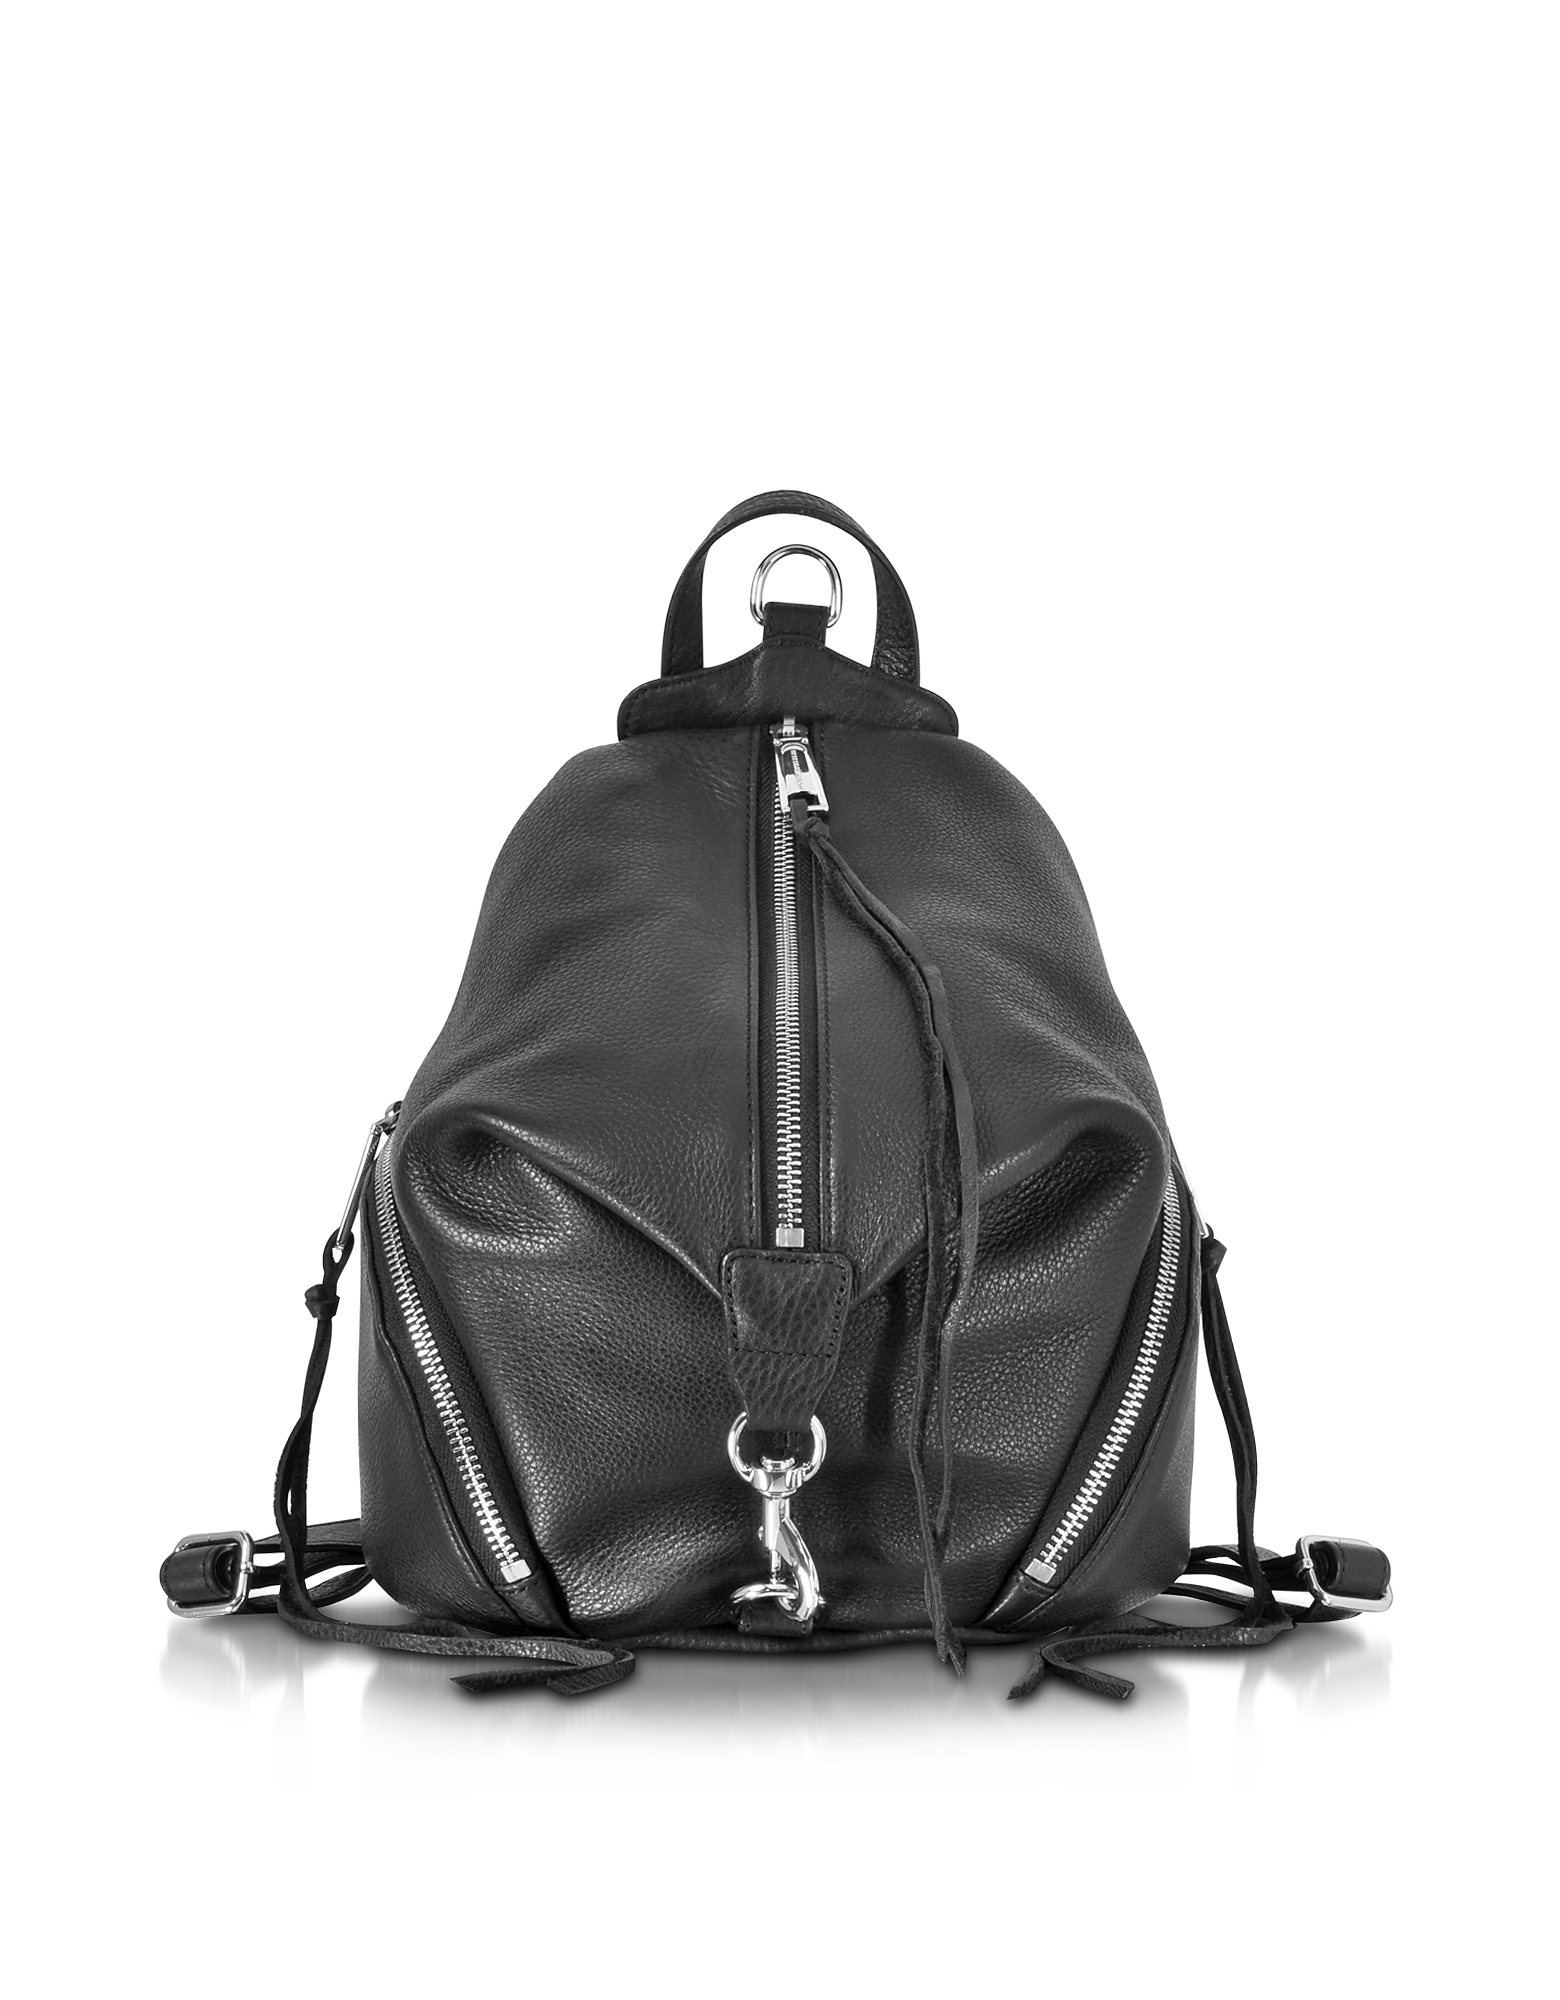 Julian Black Leather Small Backpack